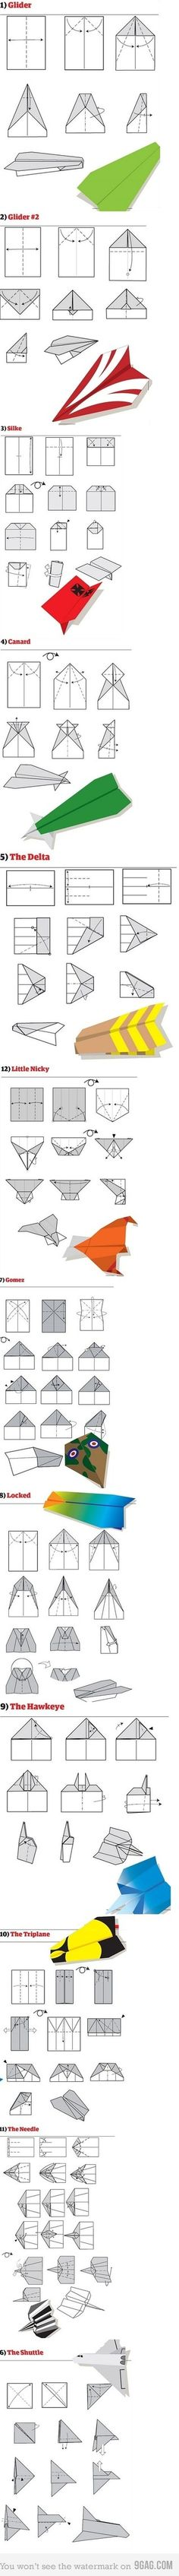 paper airplane tutorial that my sons and I have tried.  #familyfun